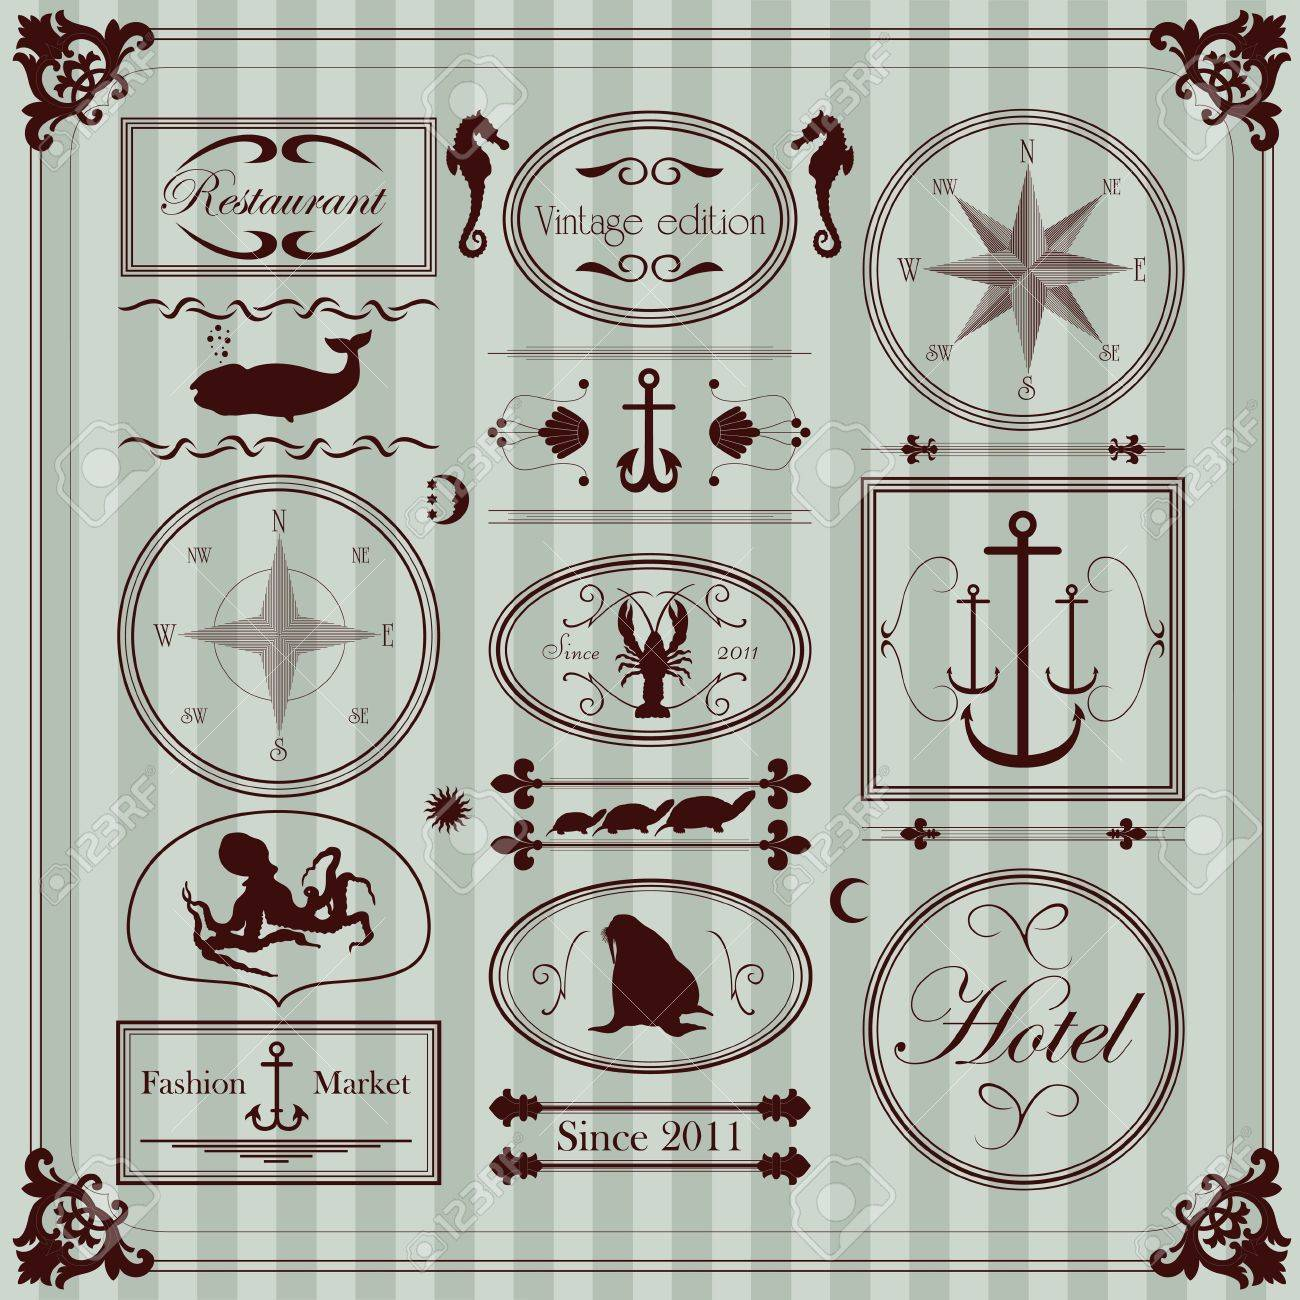 320a048c6c7 Vintage seafood restaurant frames and elements illustration collection  Stock Vector - 11650018